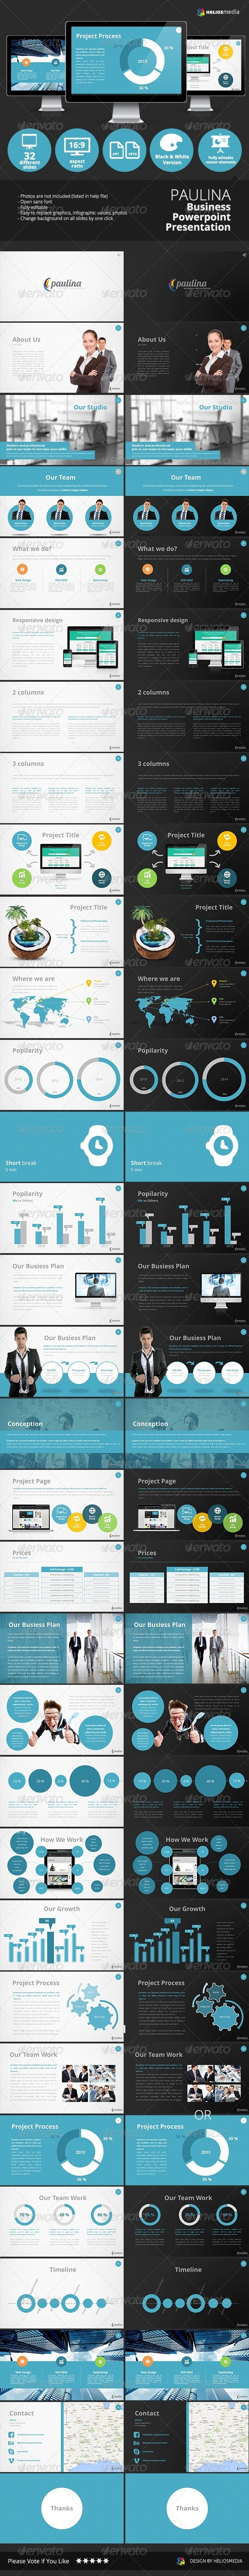 GraphicRiver Paulina Business Powerpoint Presentation 6964679